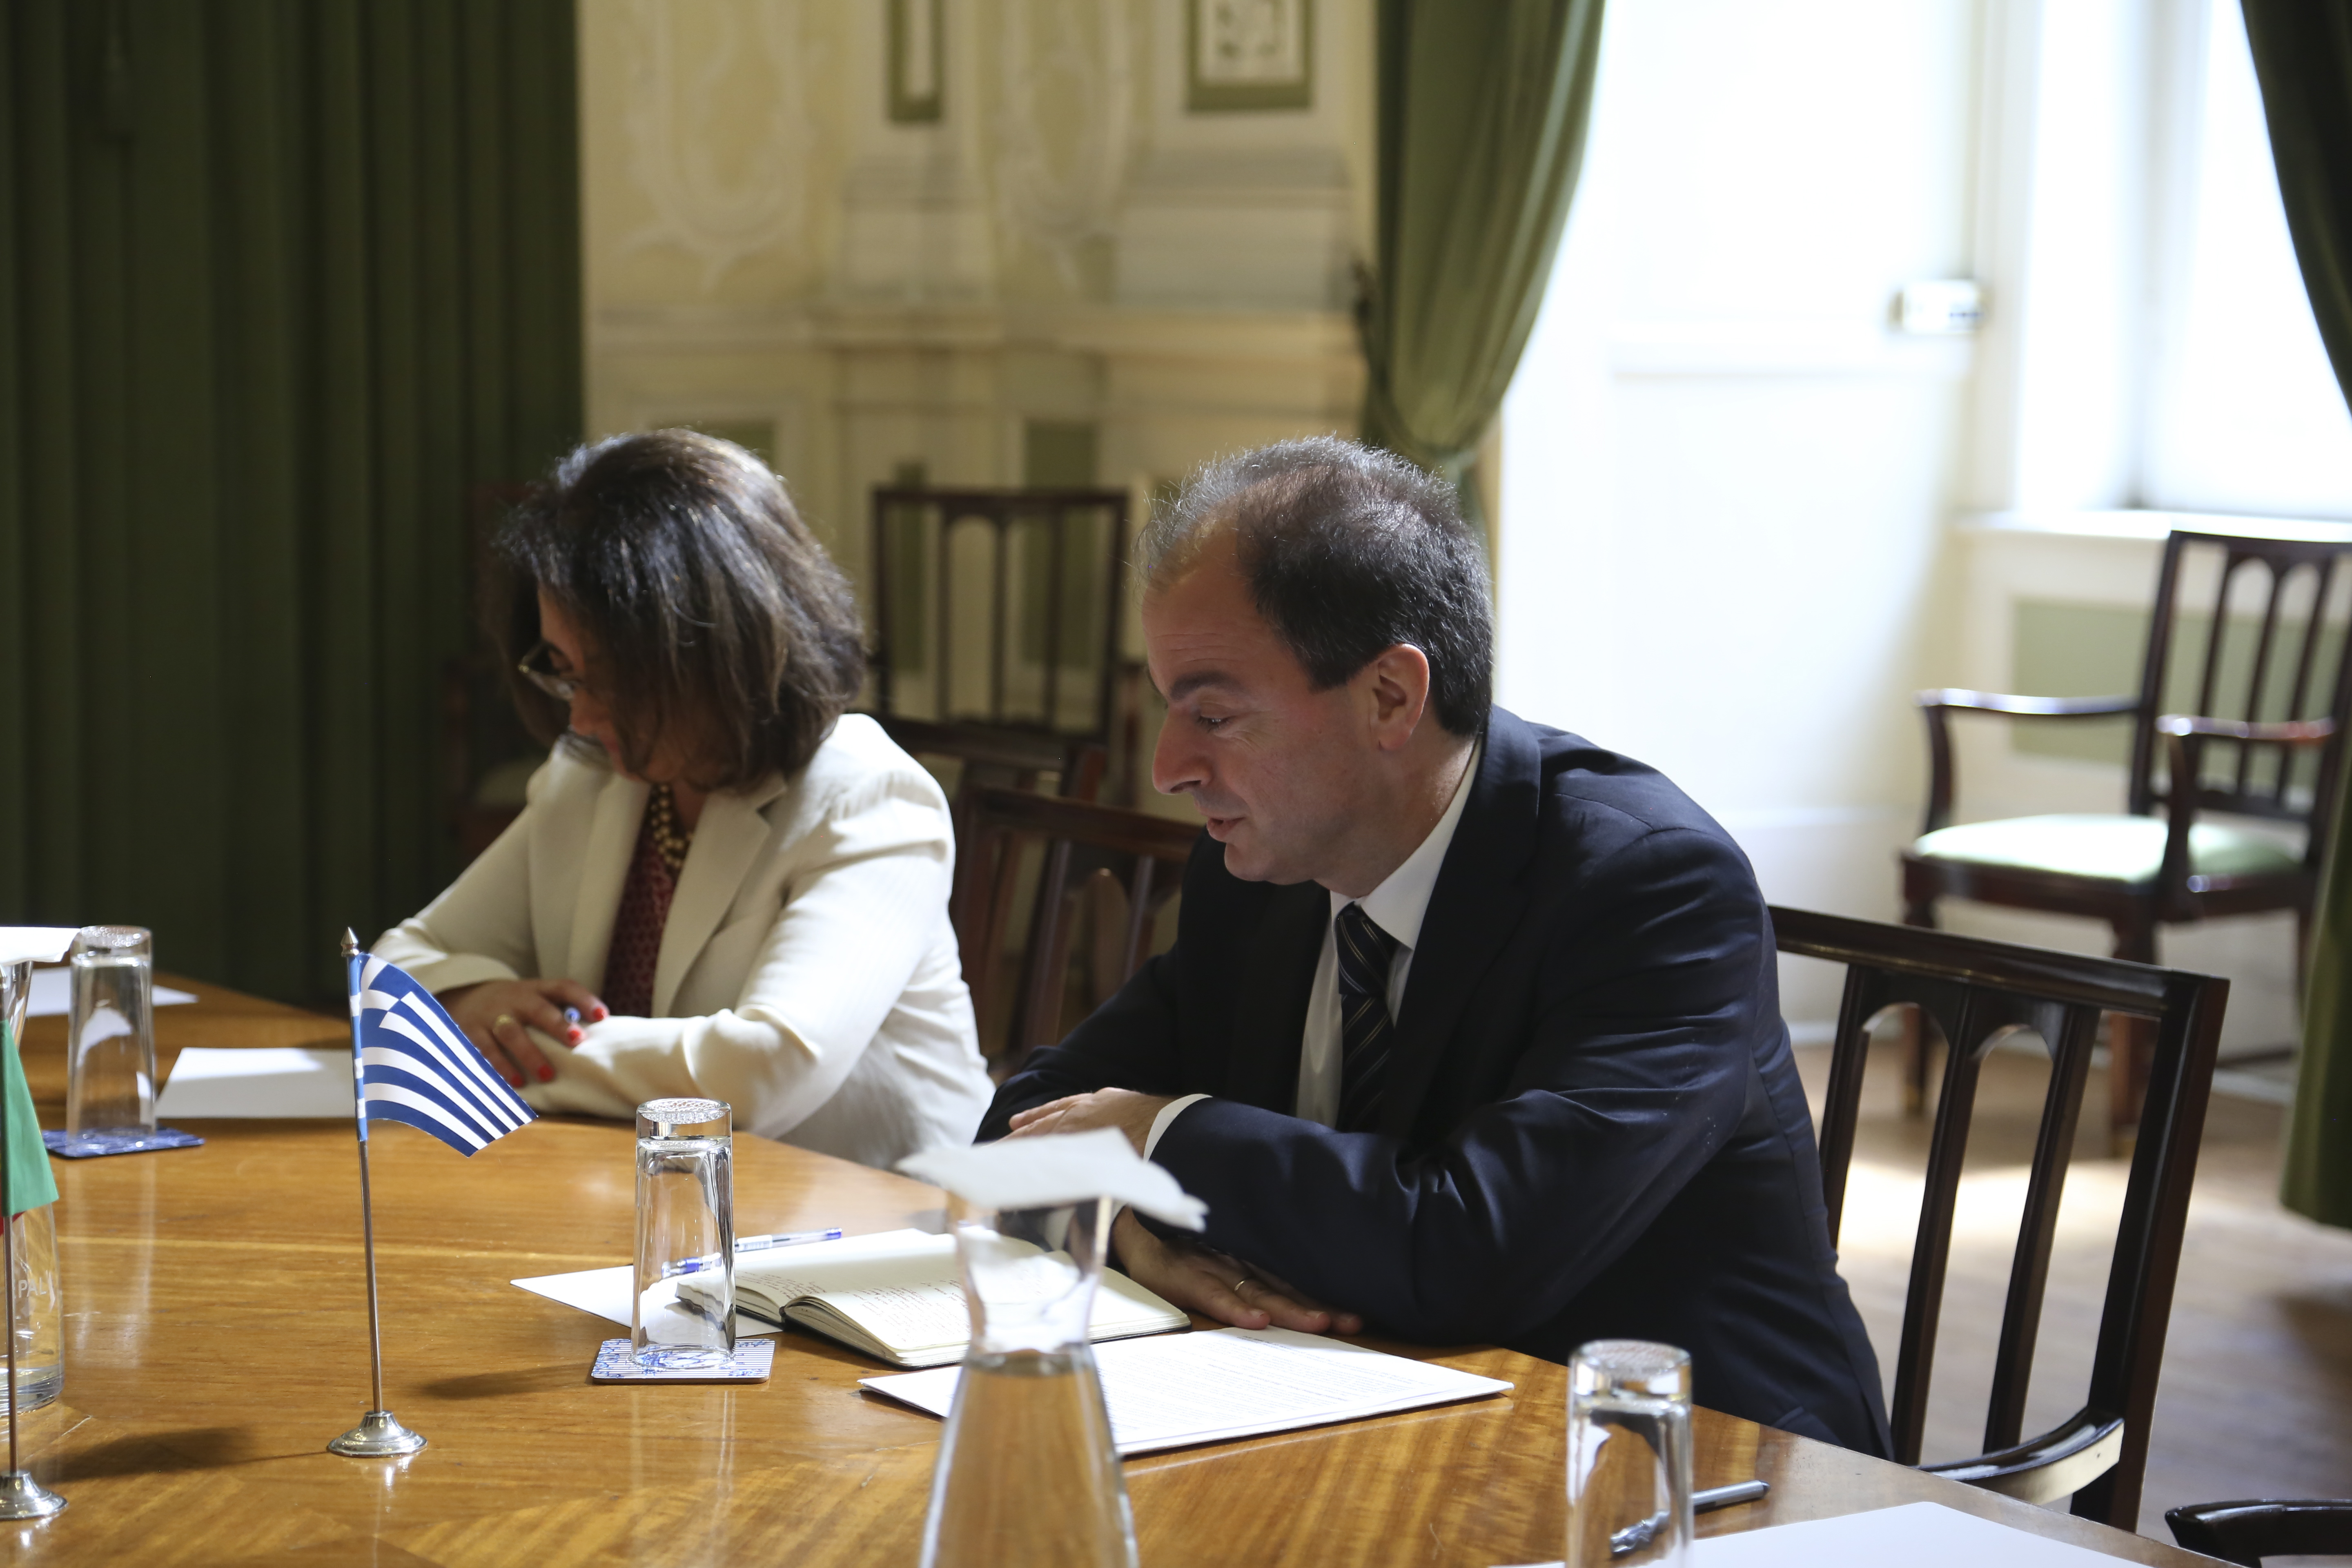 Meeting with the Portuguese Minister for Maritime Affairs